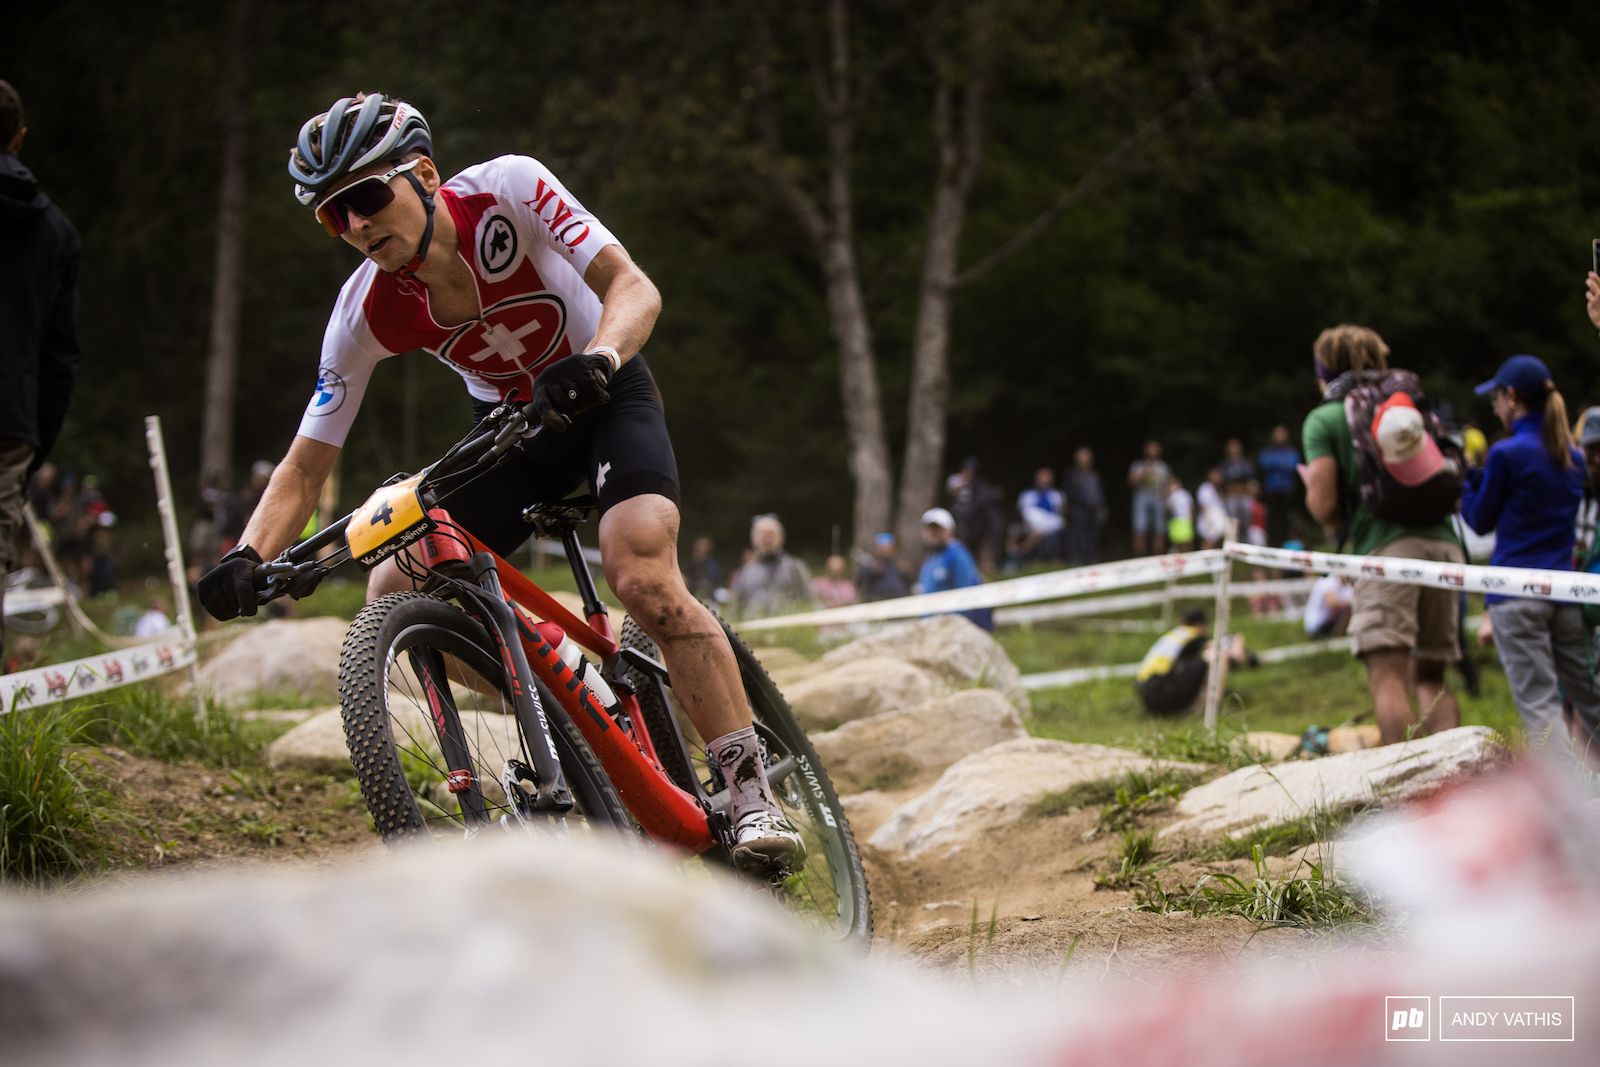 After some back and forth with the fellow countryman Joel Roth secured the final step of the podium.